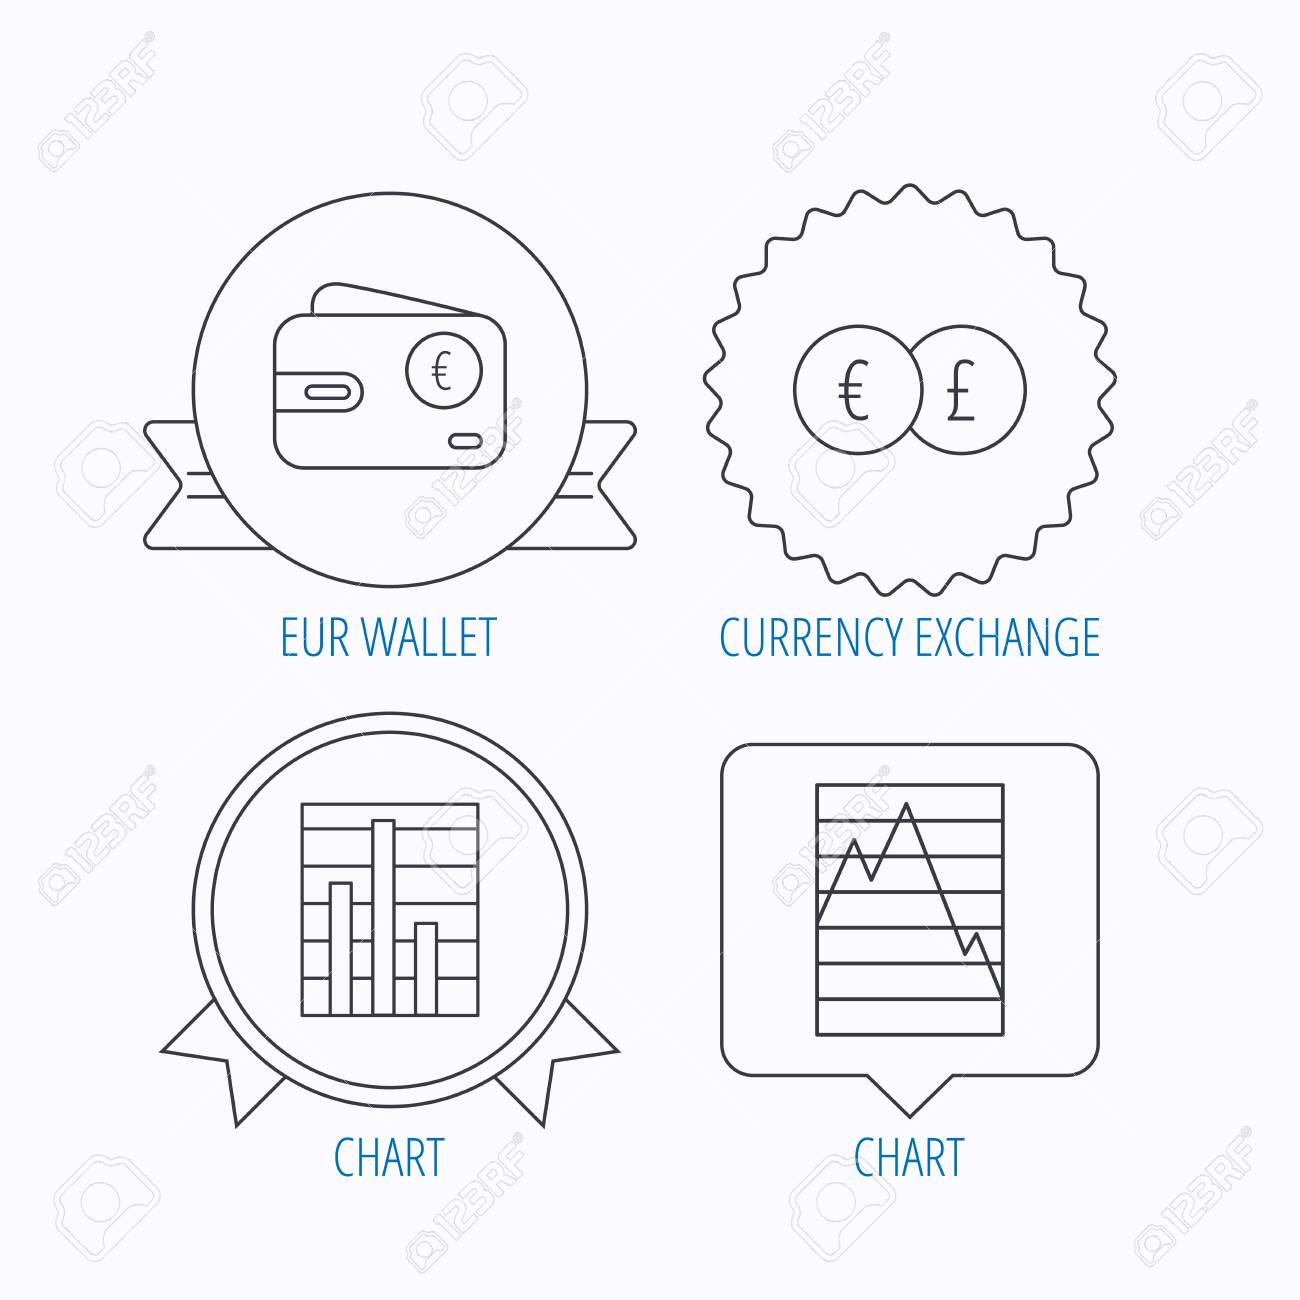 Conversion chart currency gallery free any chart examples euro currency conversion chart choice image free any chart examples euro currency conversion chart gallery free nvjuhfo Images